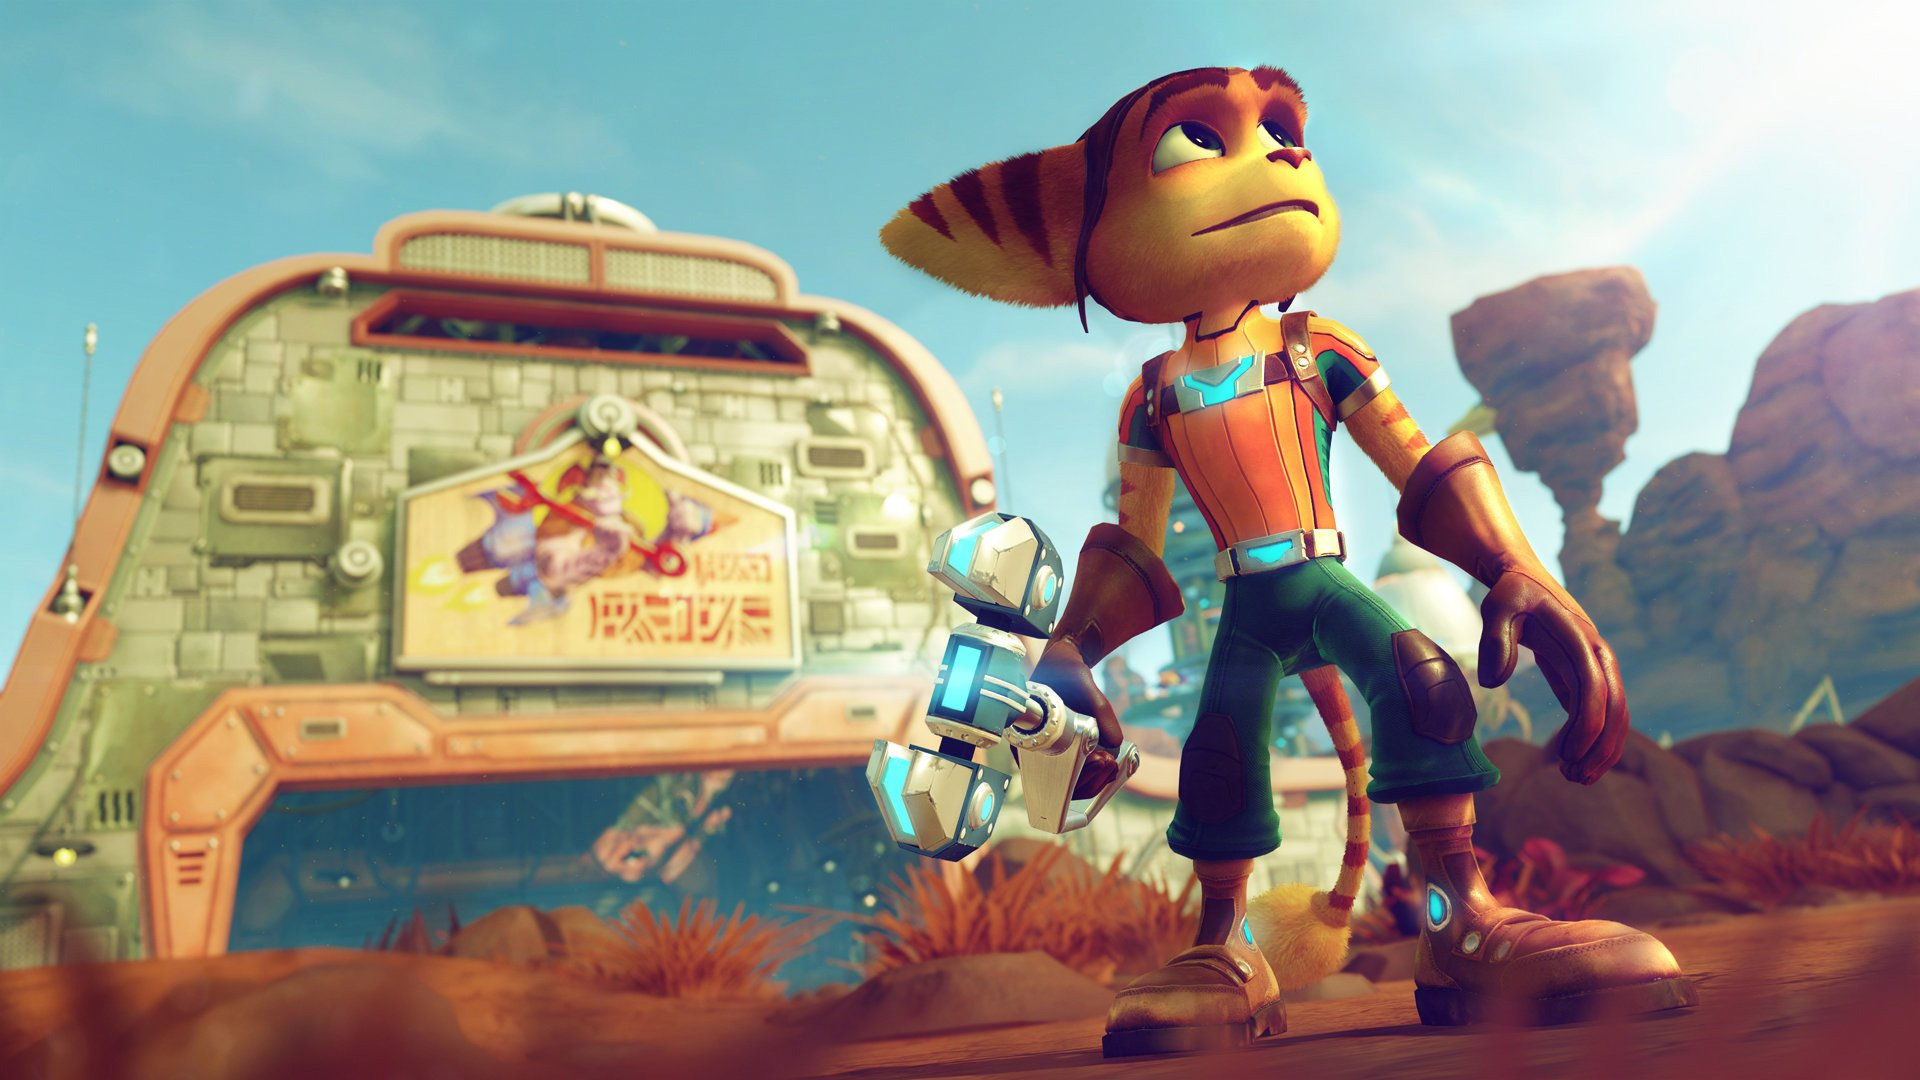 Sony is giving out Ratchet & Clank in March as part of 'a series of free games' screenshot